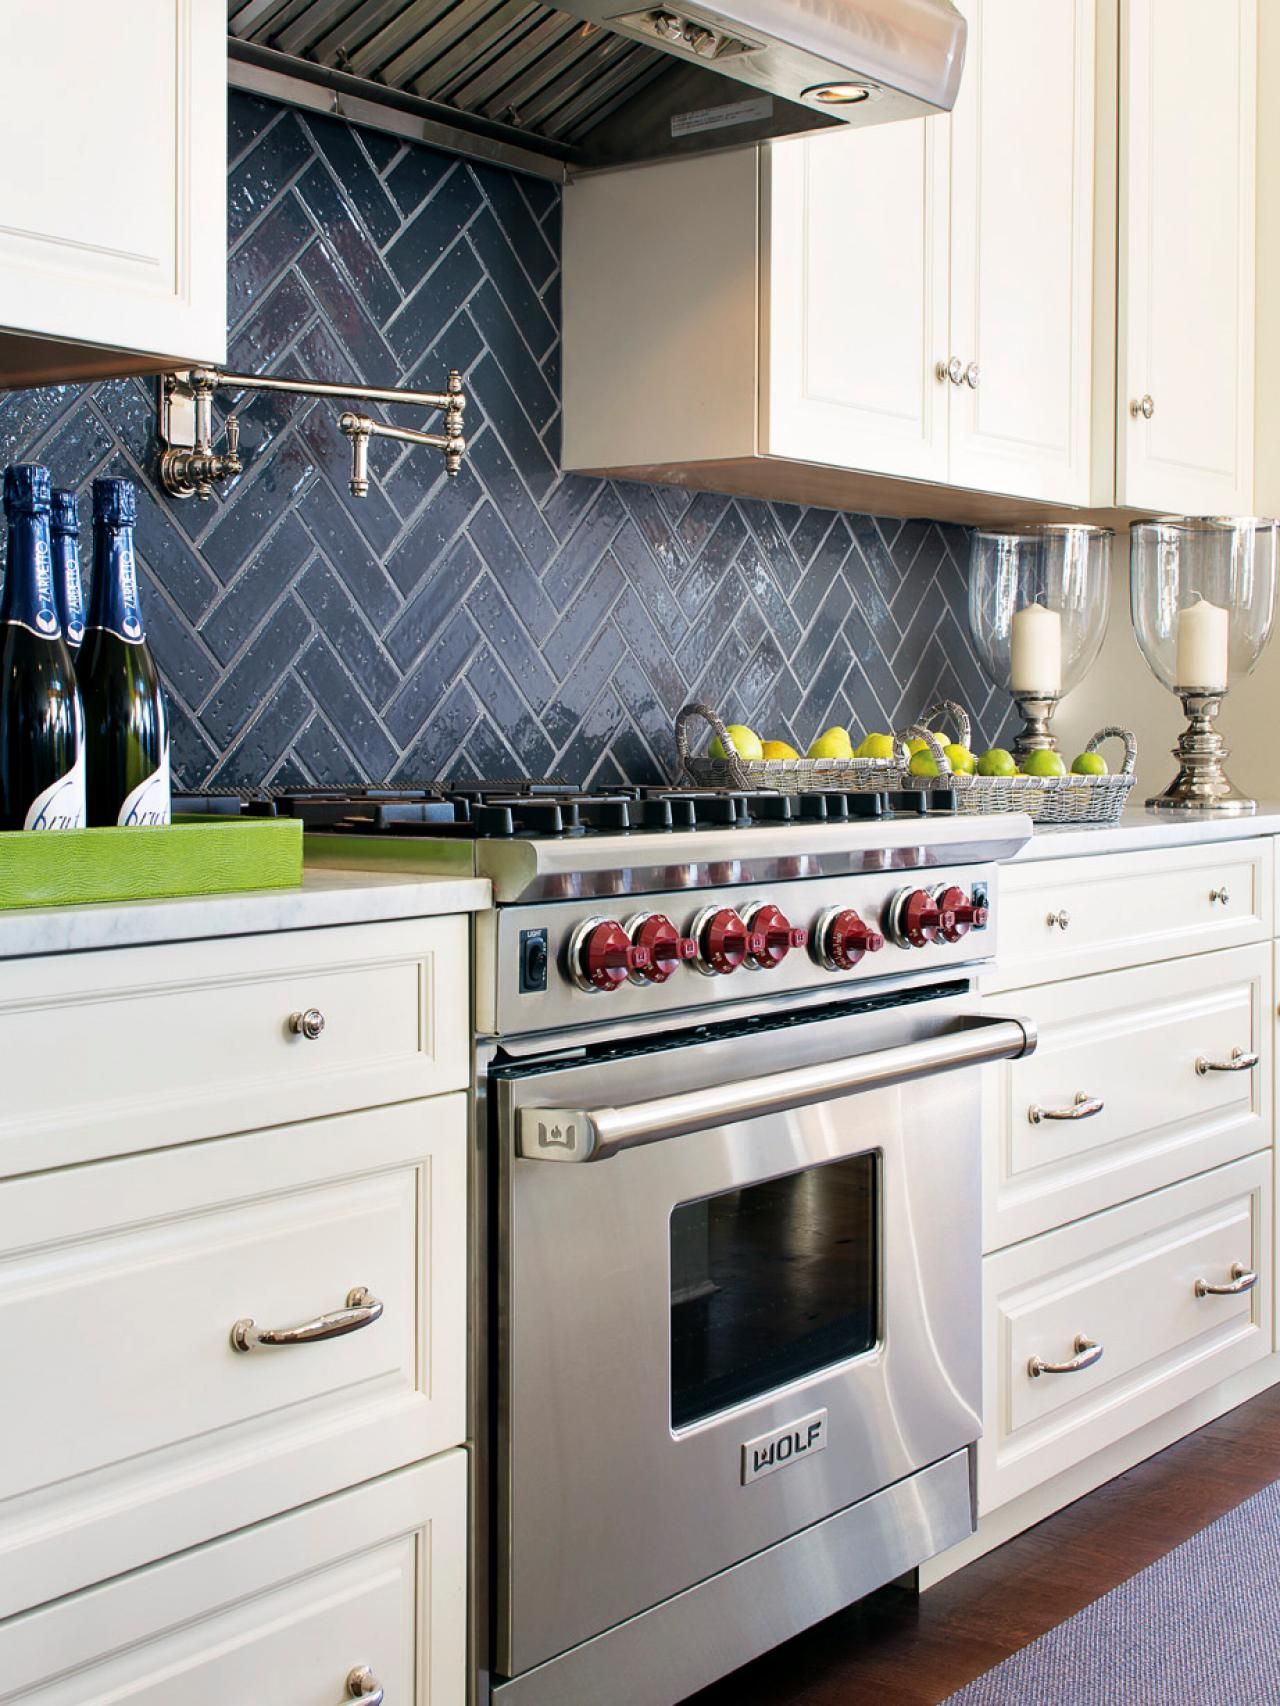 Pictures Of Kitchen Backsplash Ideas From Ebisu Apt Hgtv